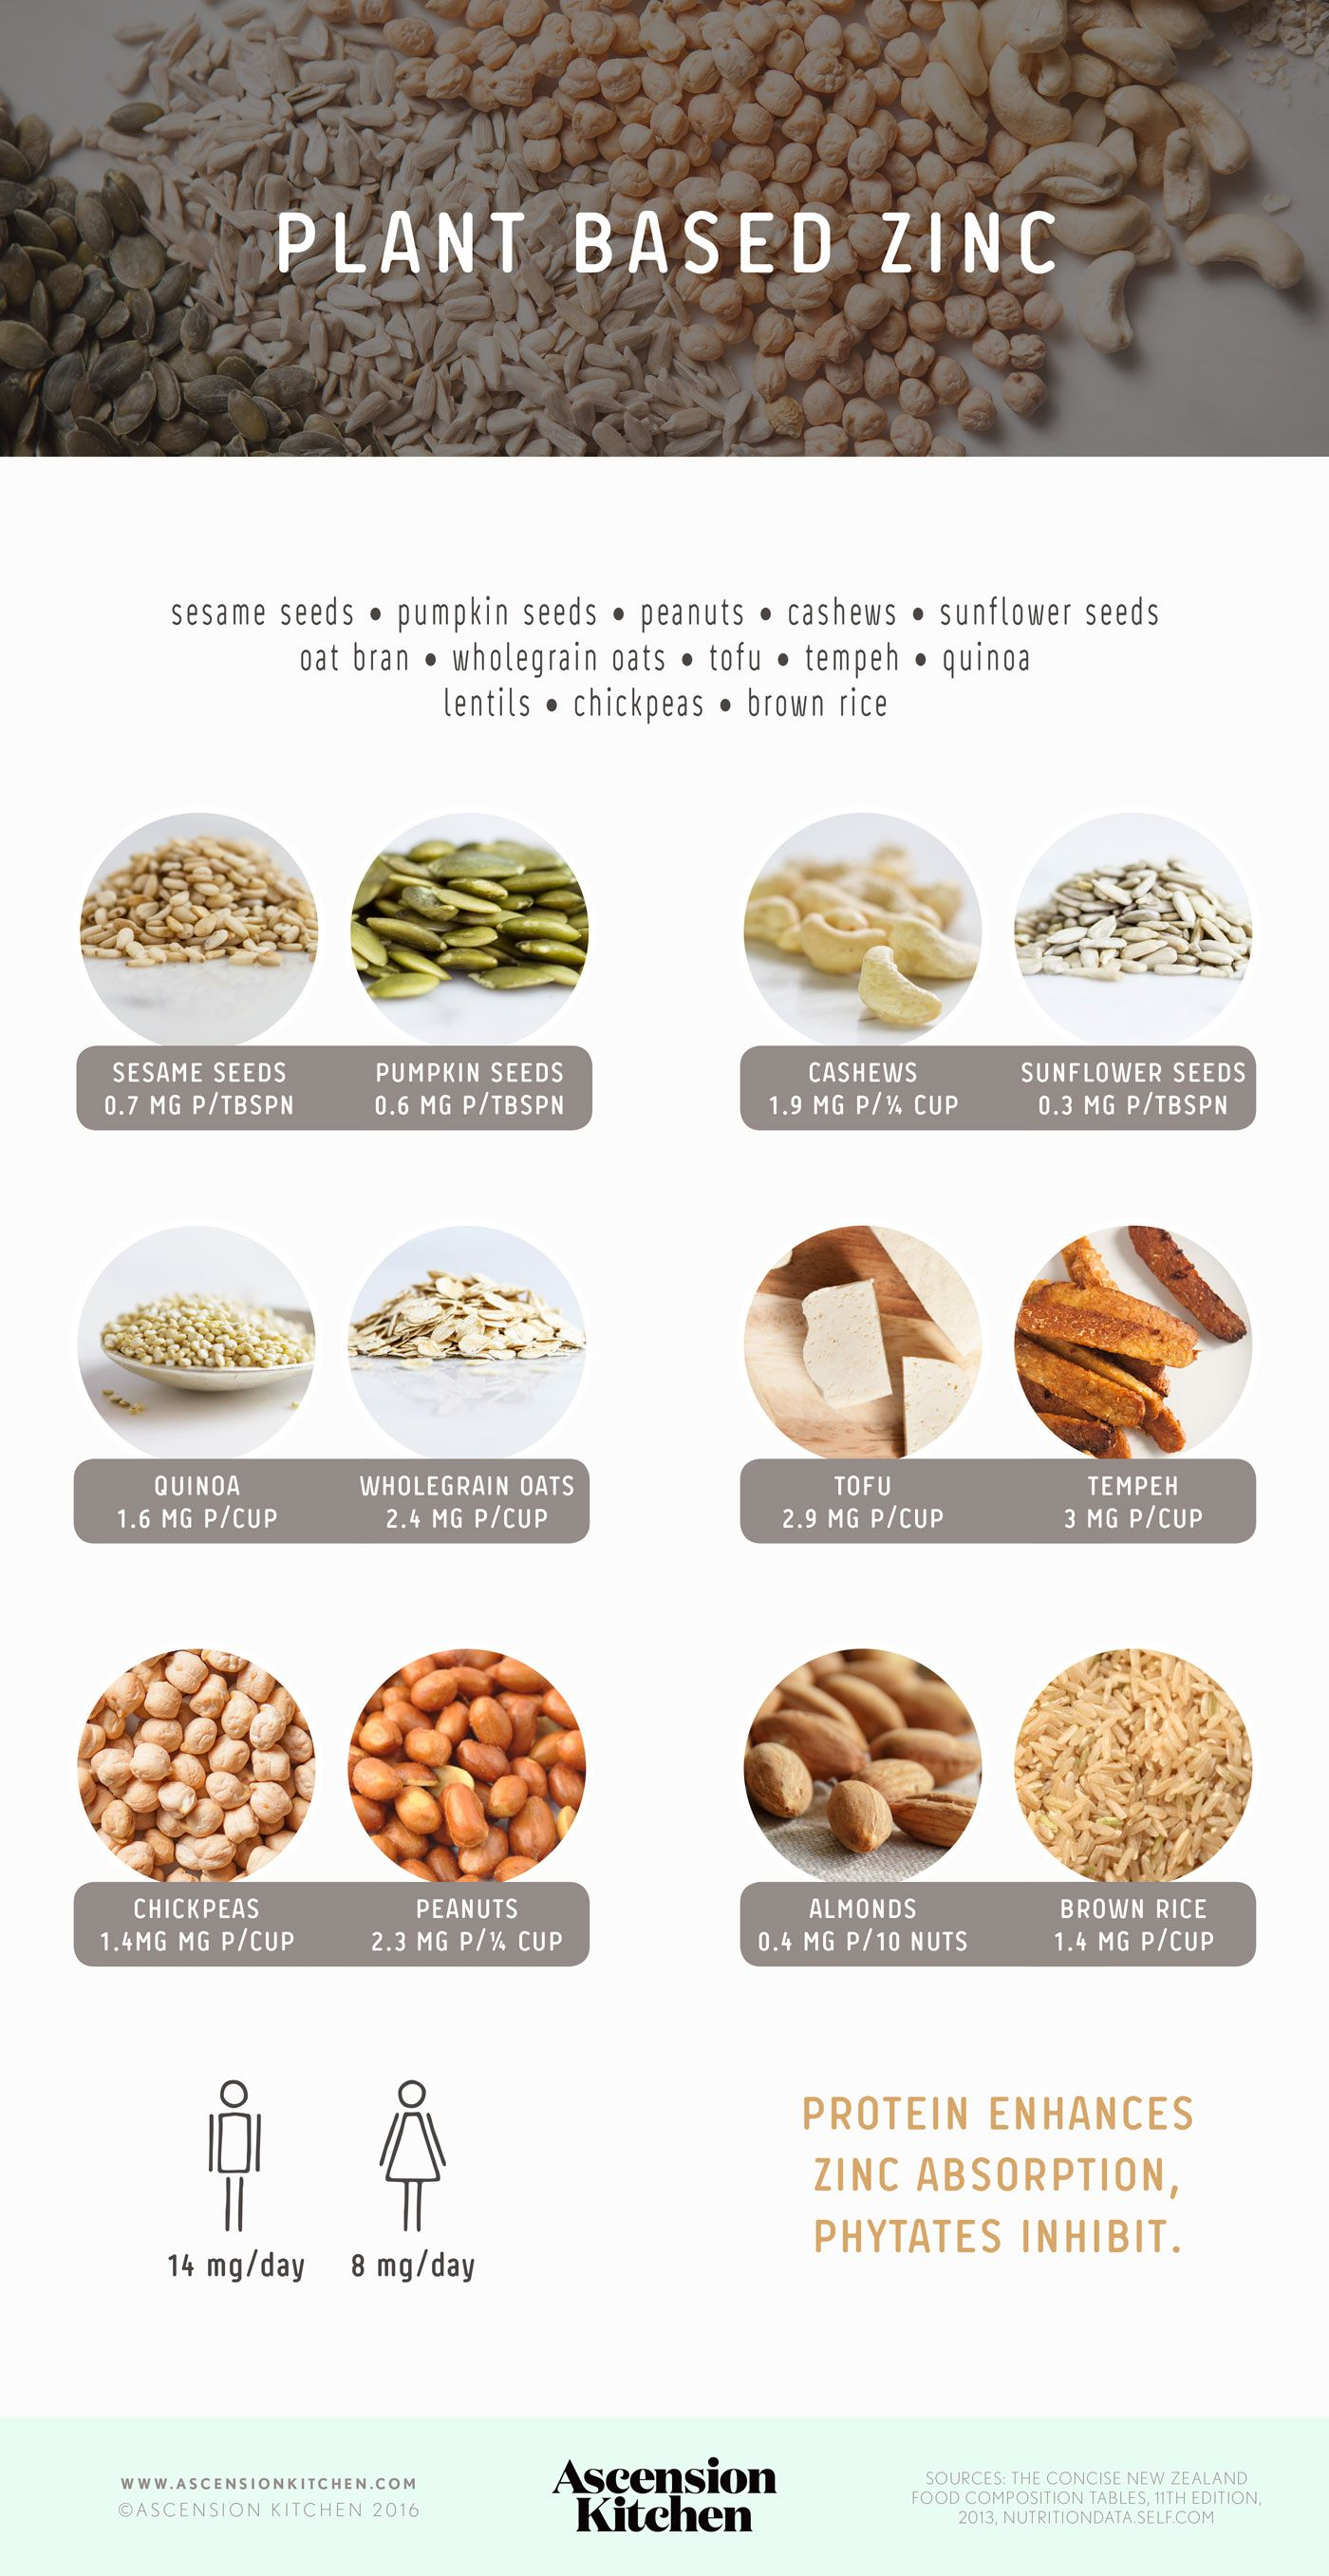 Importance of Zinc in the Body